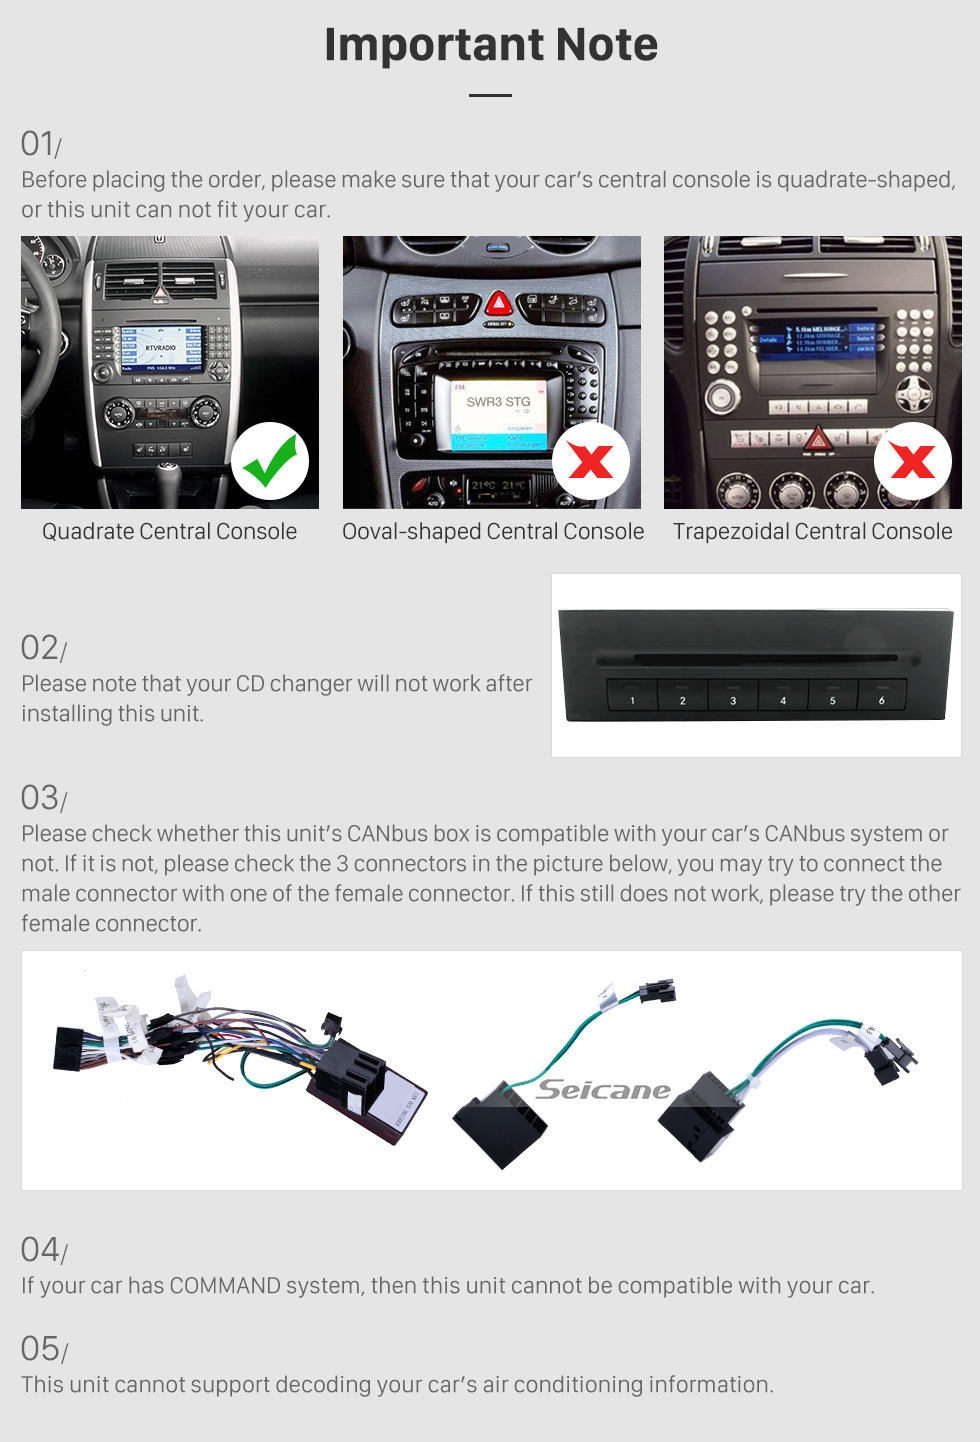 Seicane 9 inch Android 9.0 Aftermarket Radio for 2000-2015 VW Volkswagen Crafter for DVD player Bluetooth music GPS navigation system car stereo WiFi Mirror Link HD 1080P Video